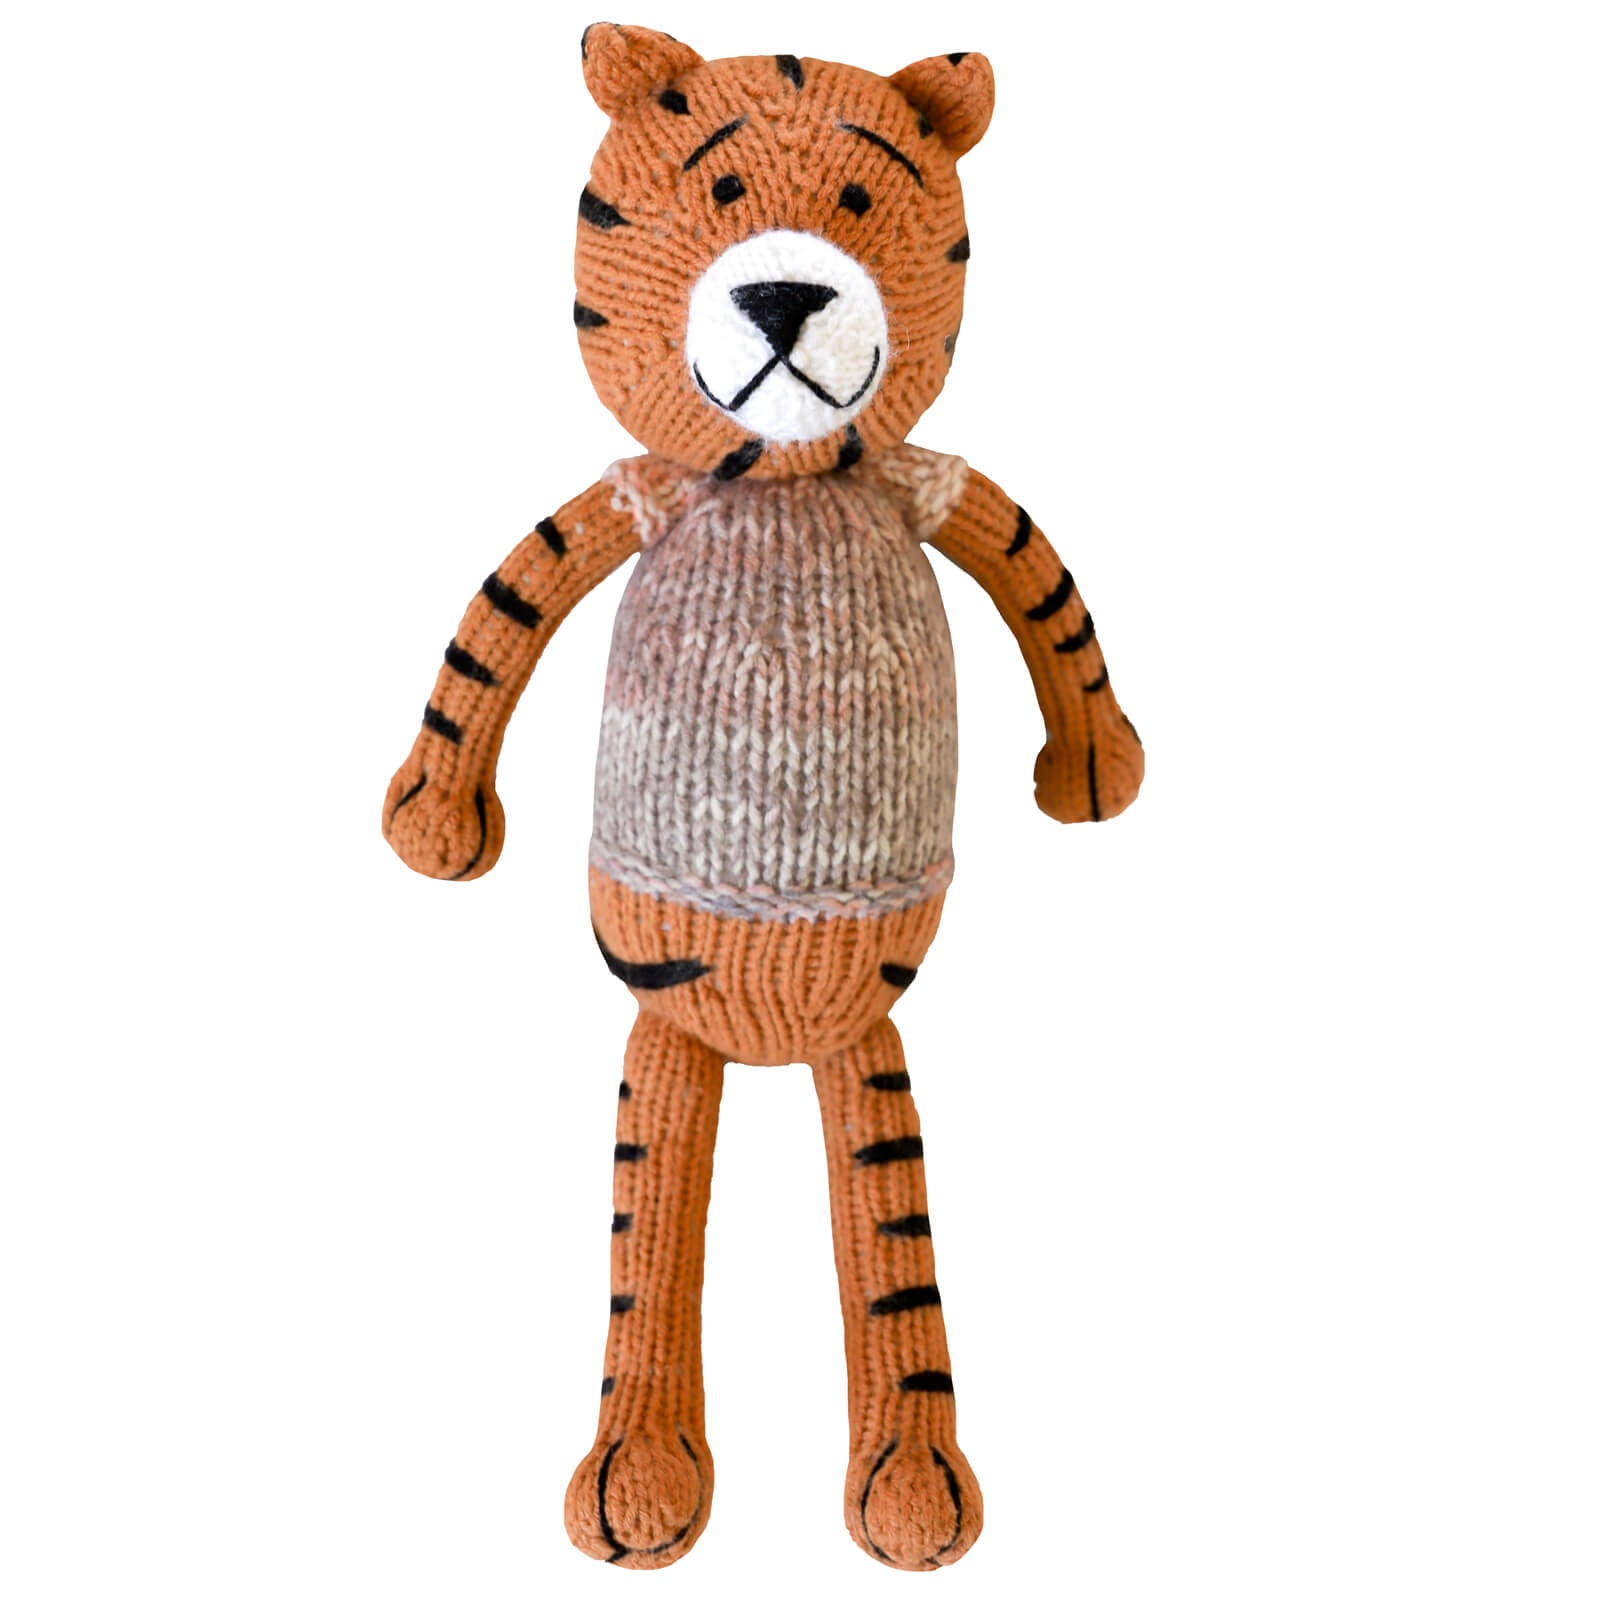 Knitted Tiger Heirloom Toy